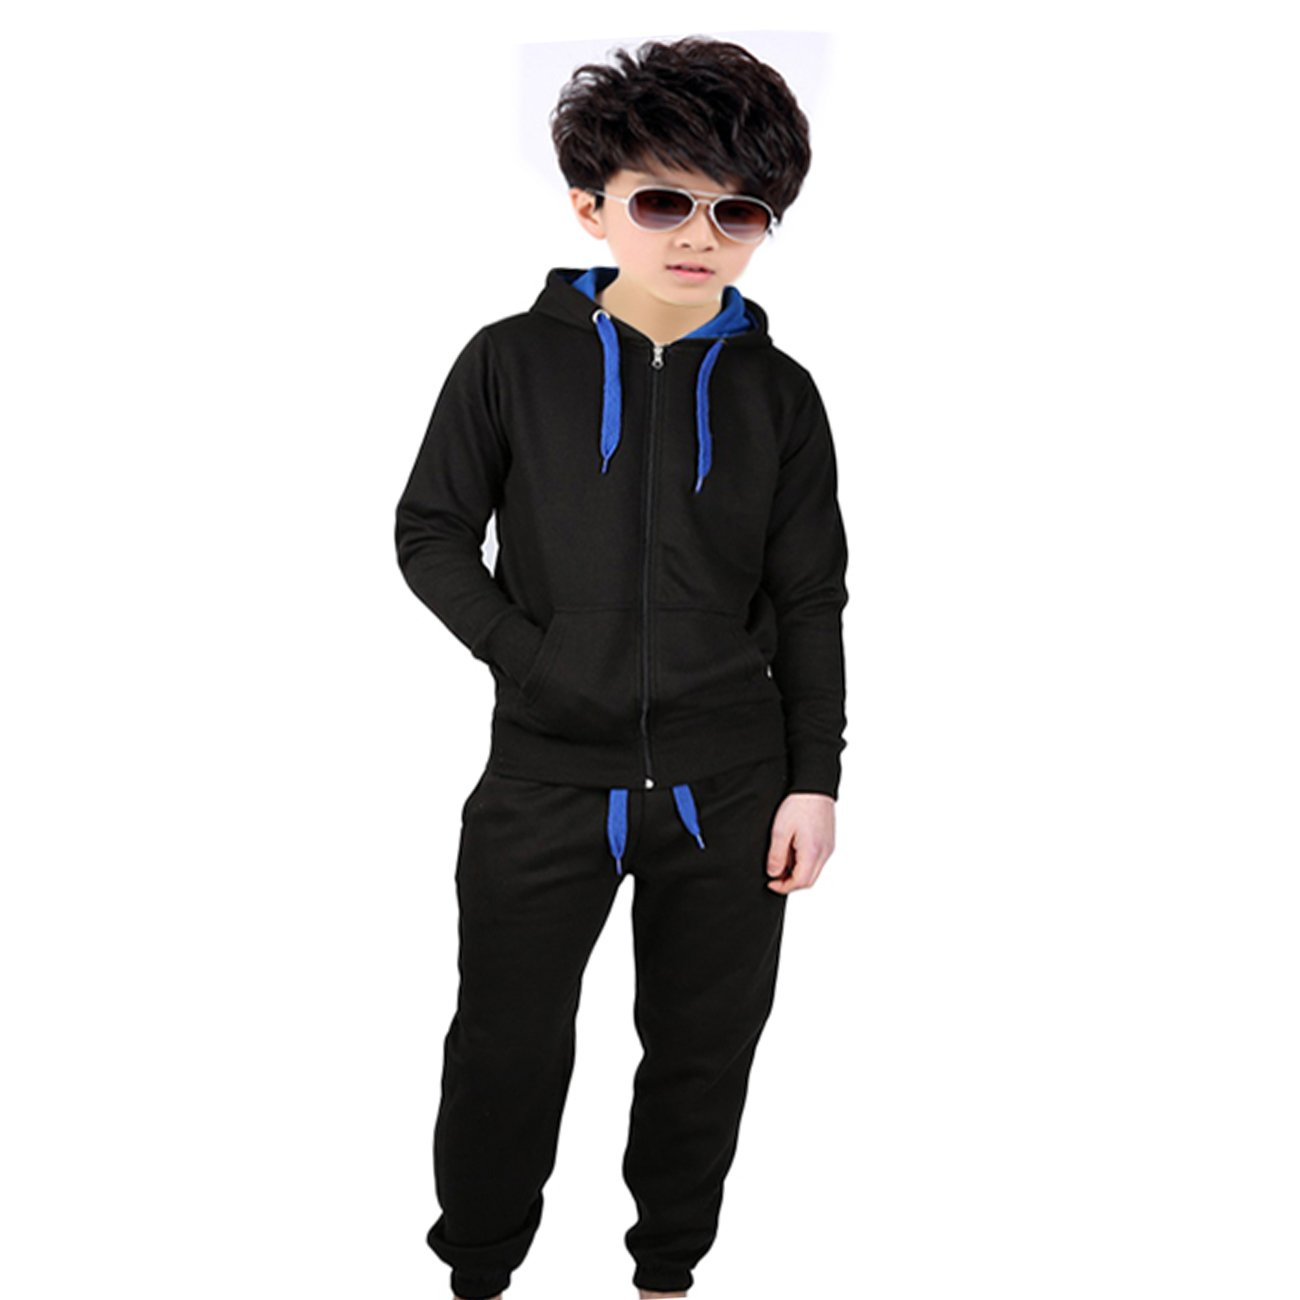 Kids Polyester Tracksuit Front Contrast Set Full Sleeve Zipper Hoodie Fleece Bottoms Top Jogging Jogger Gym School Clothing